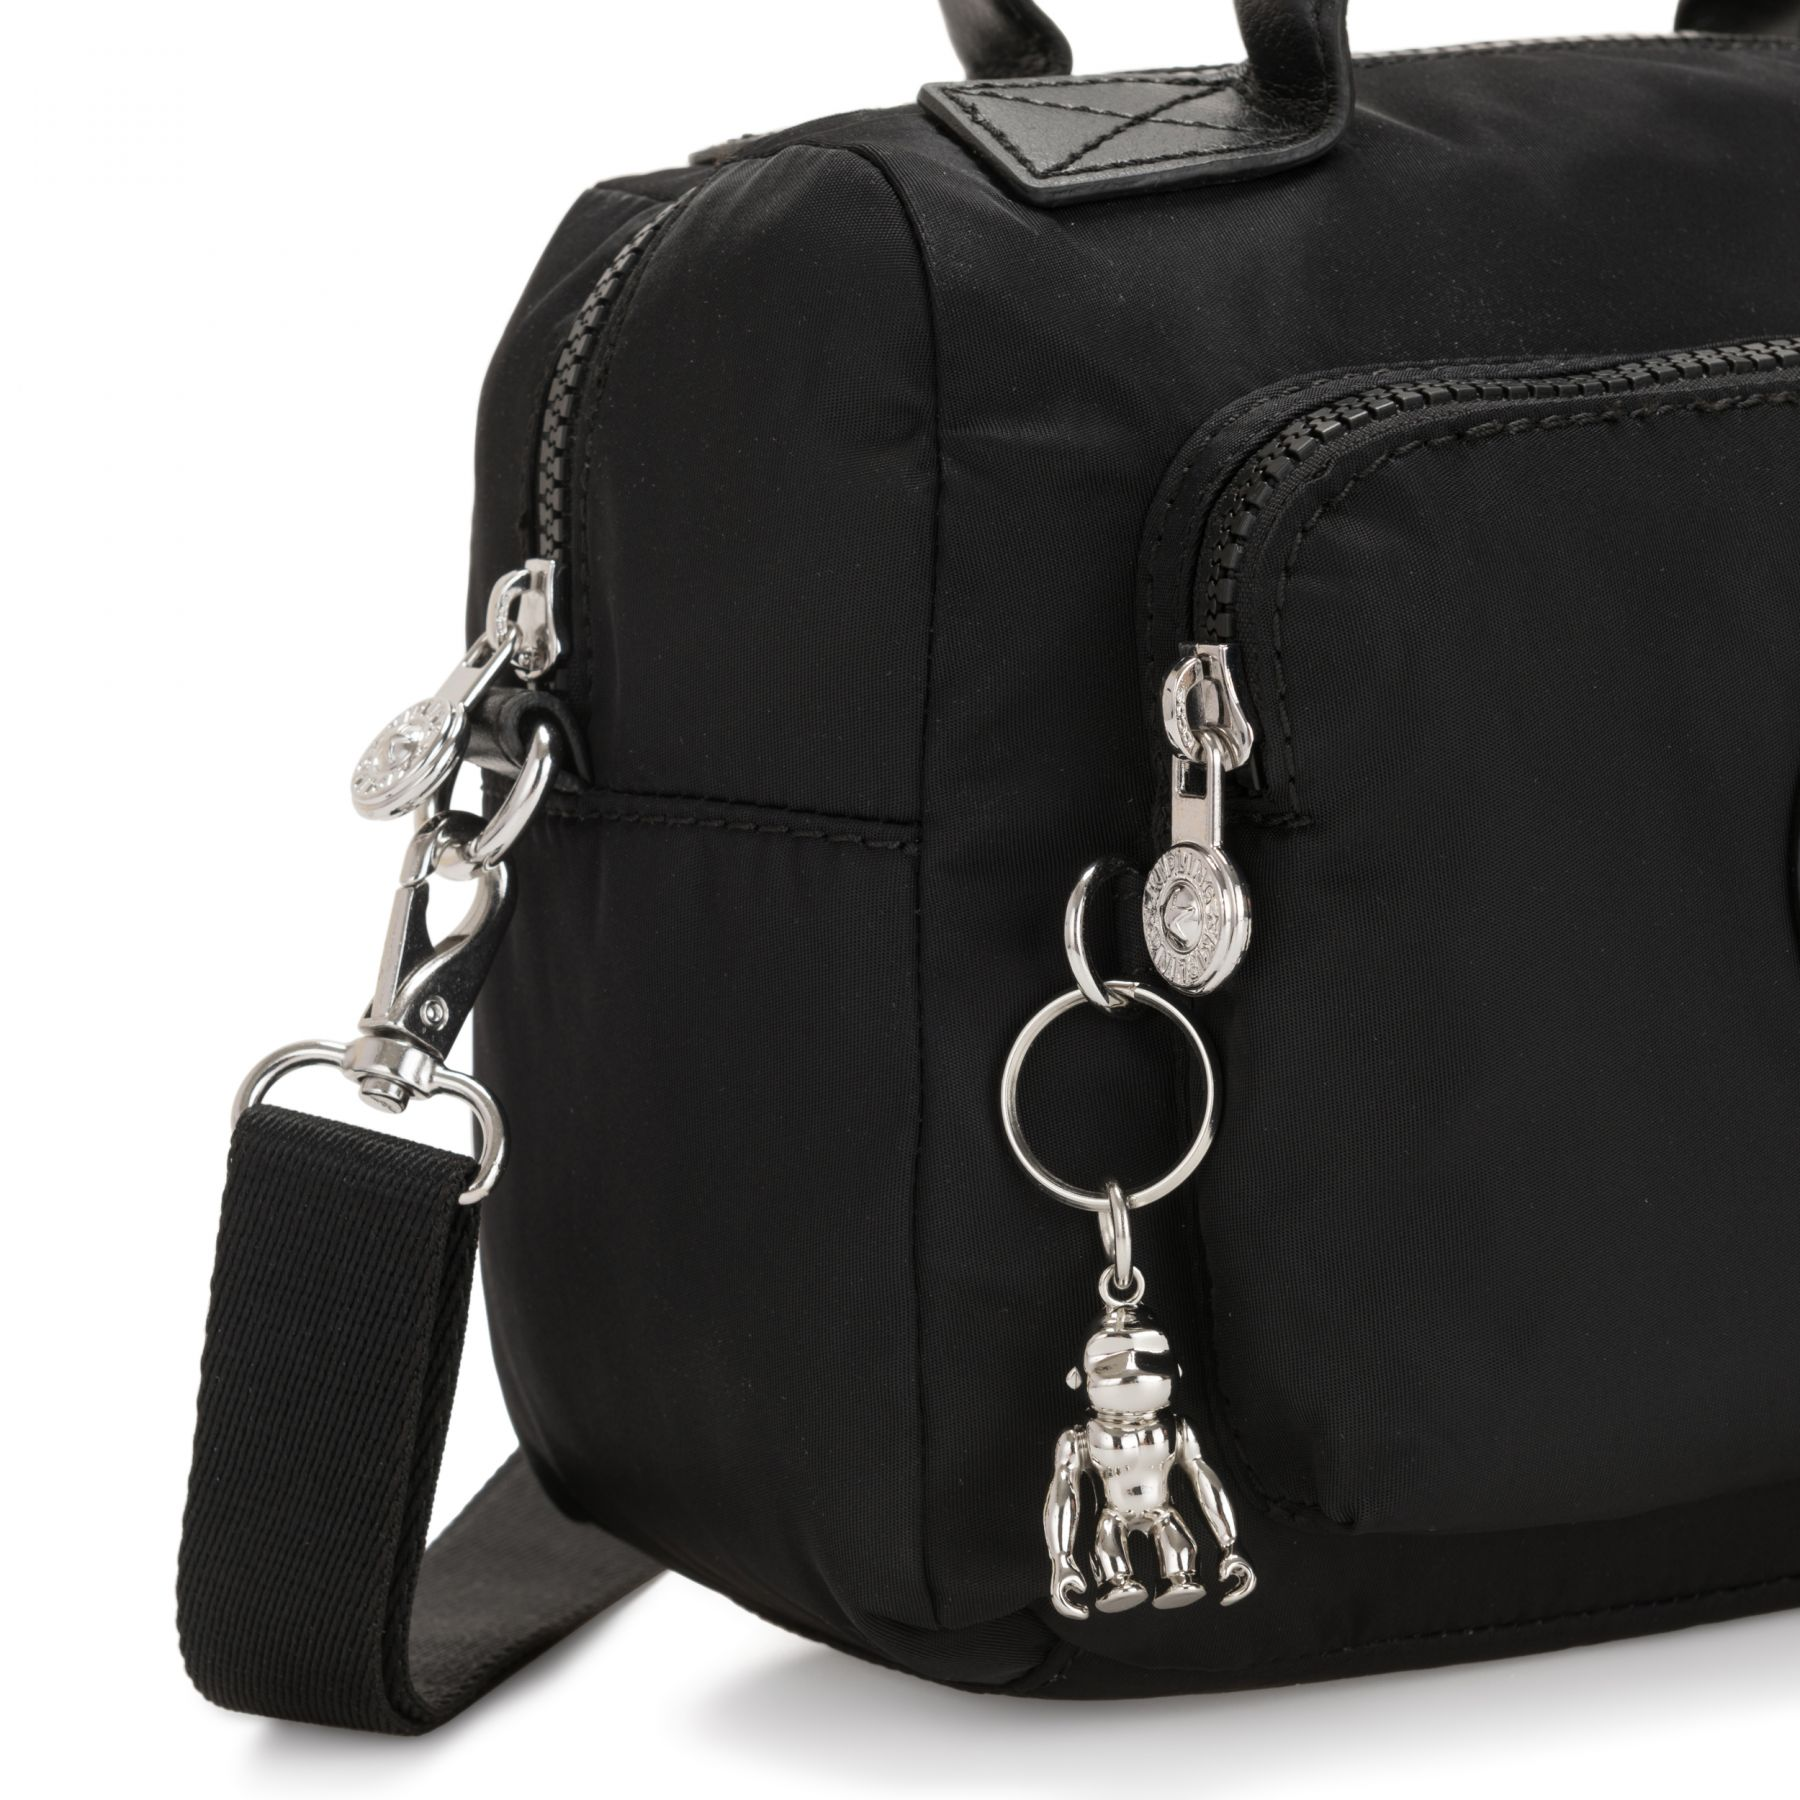 AZRA Latest Shoulder Bags by Kipling - view 5